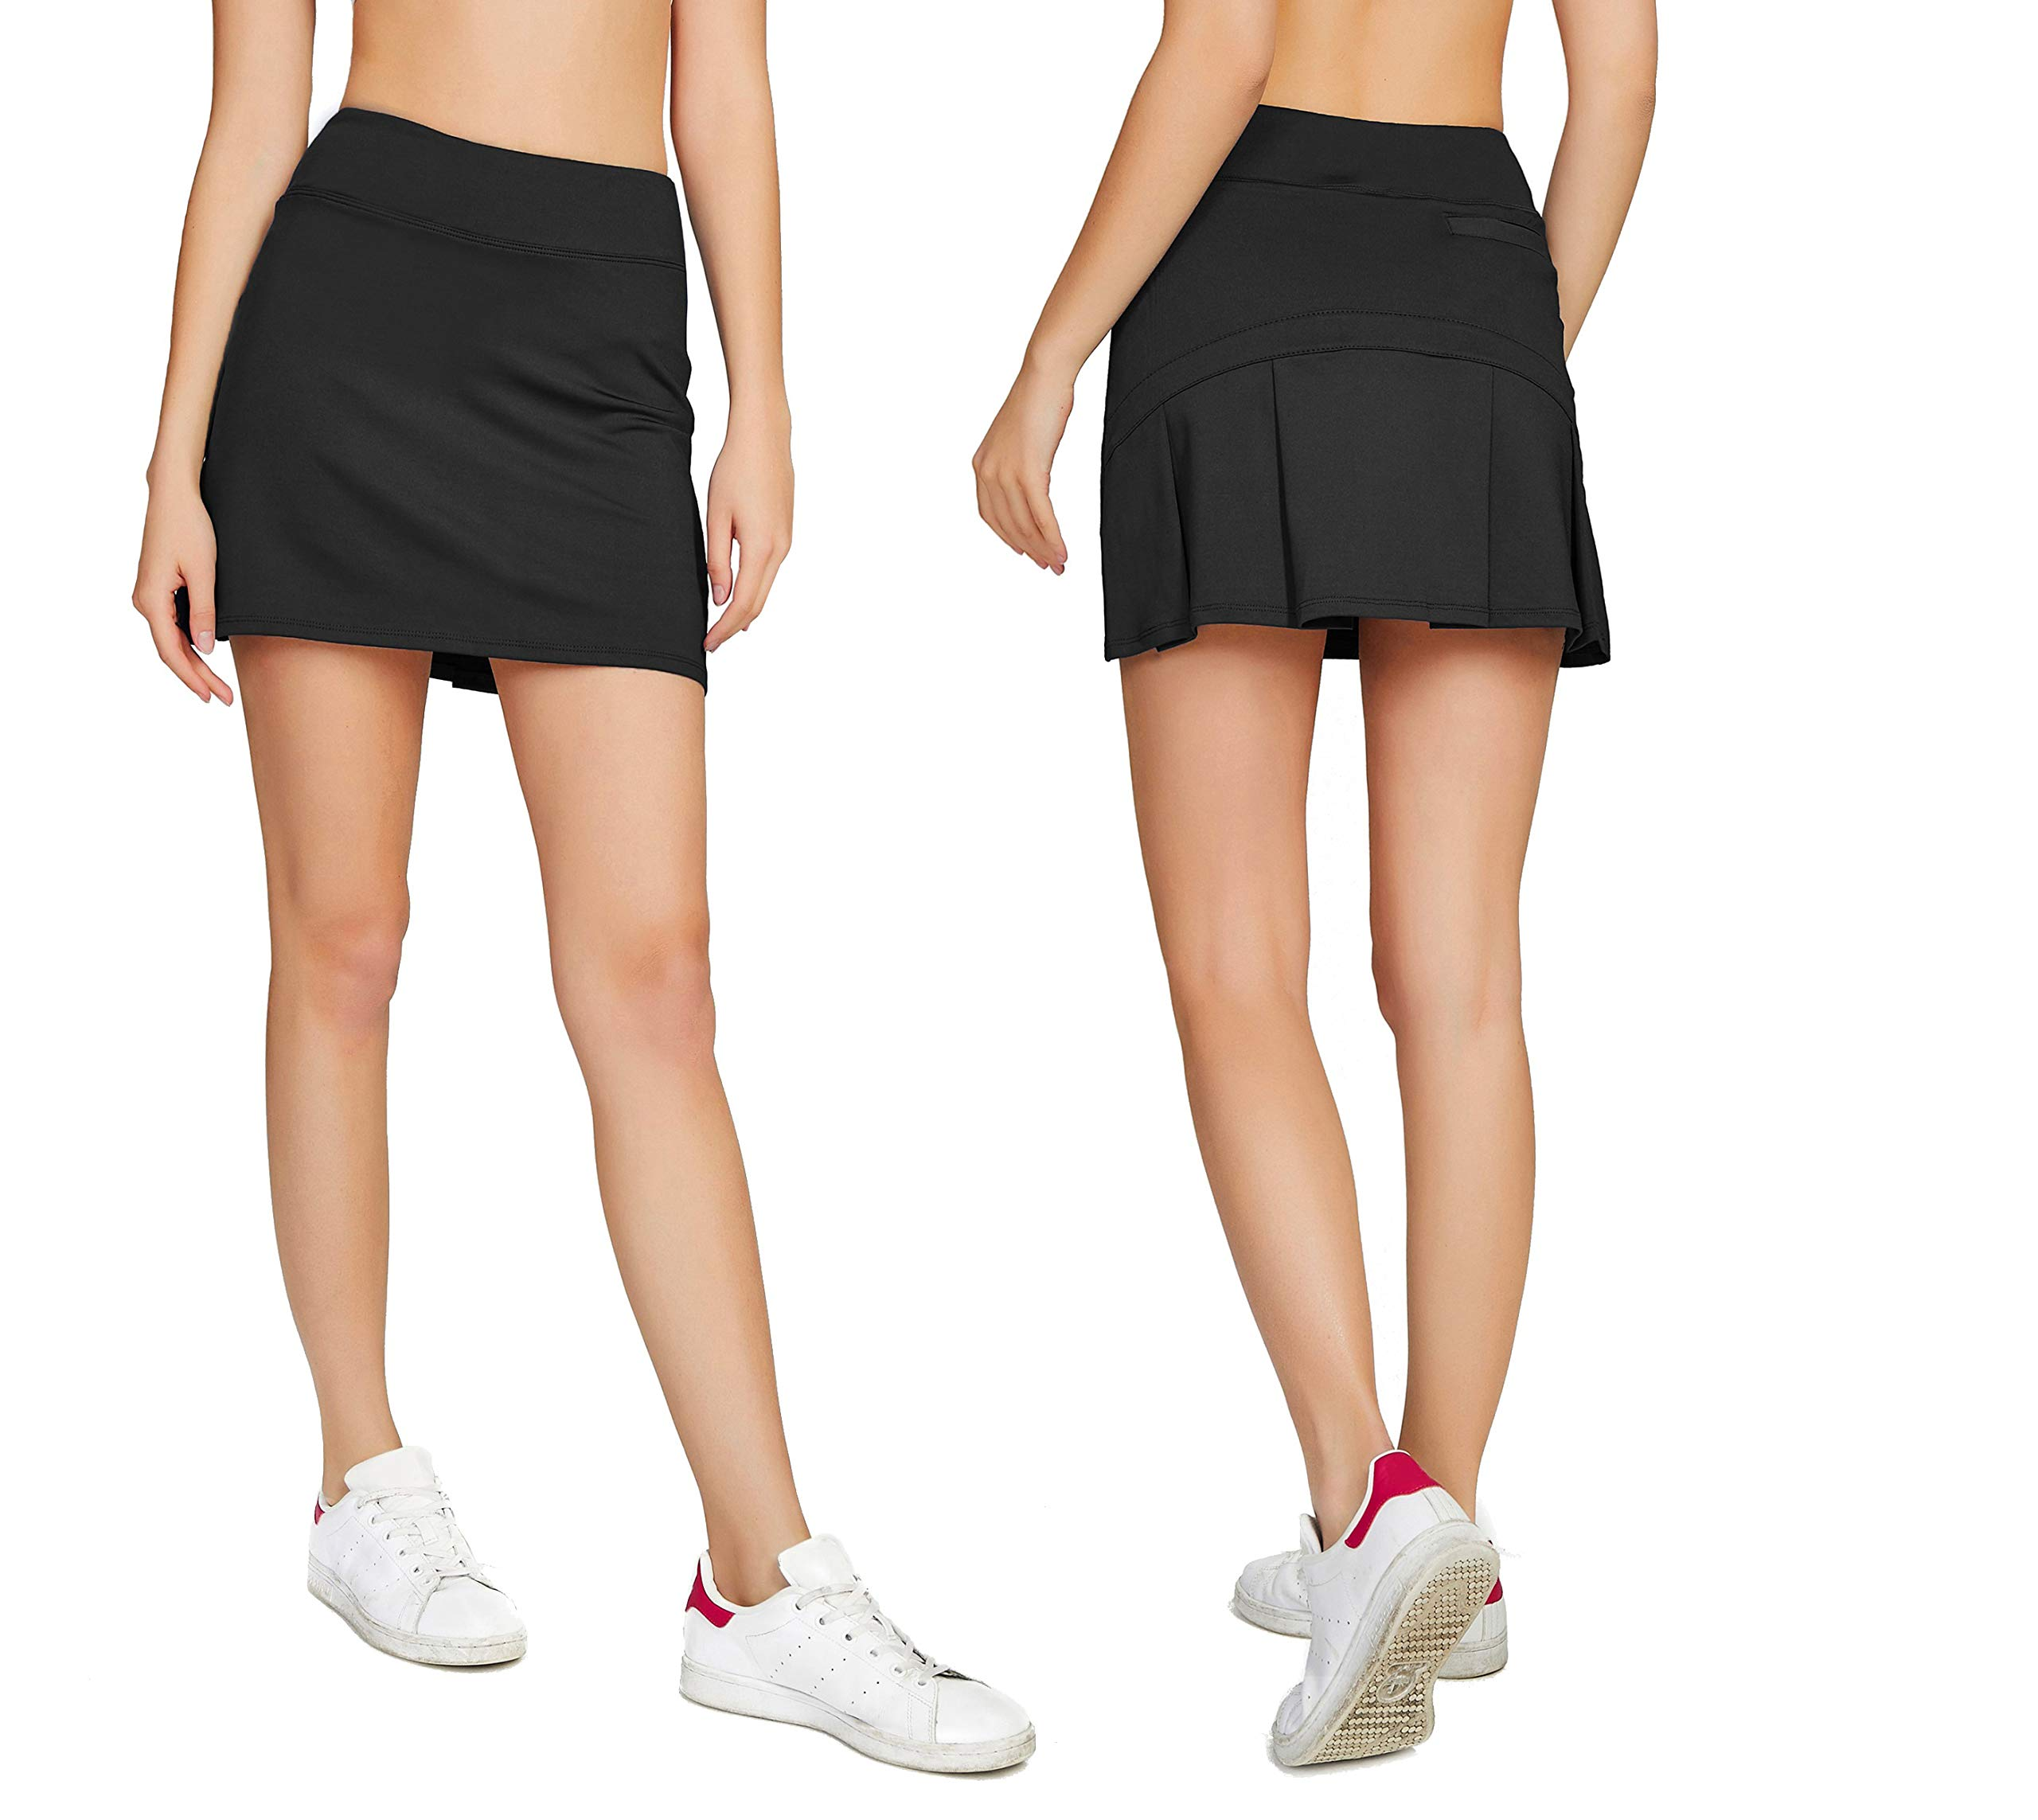 Cityoung Women's Casual Pleated Golf Skirt with Underneath Shorts Running Skorts m black1